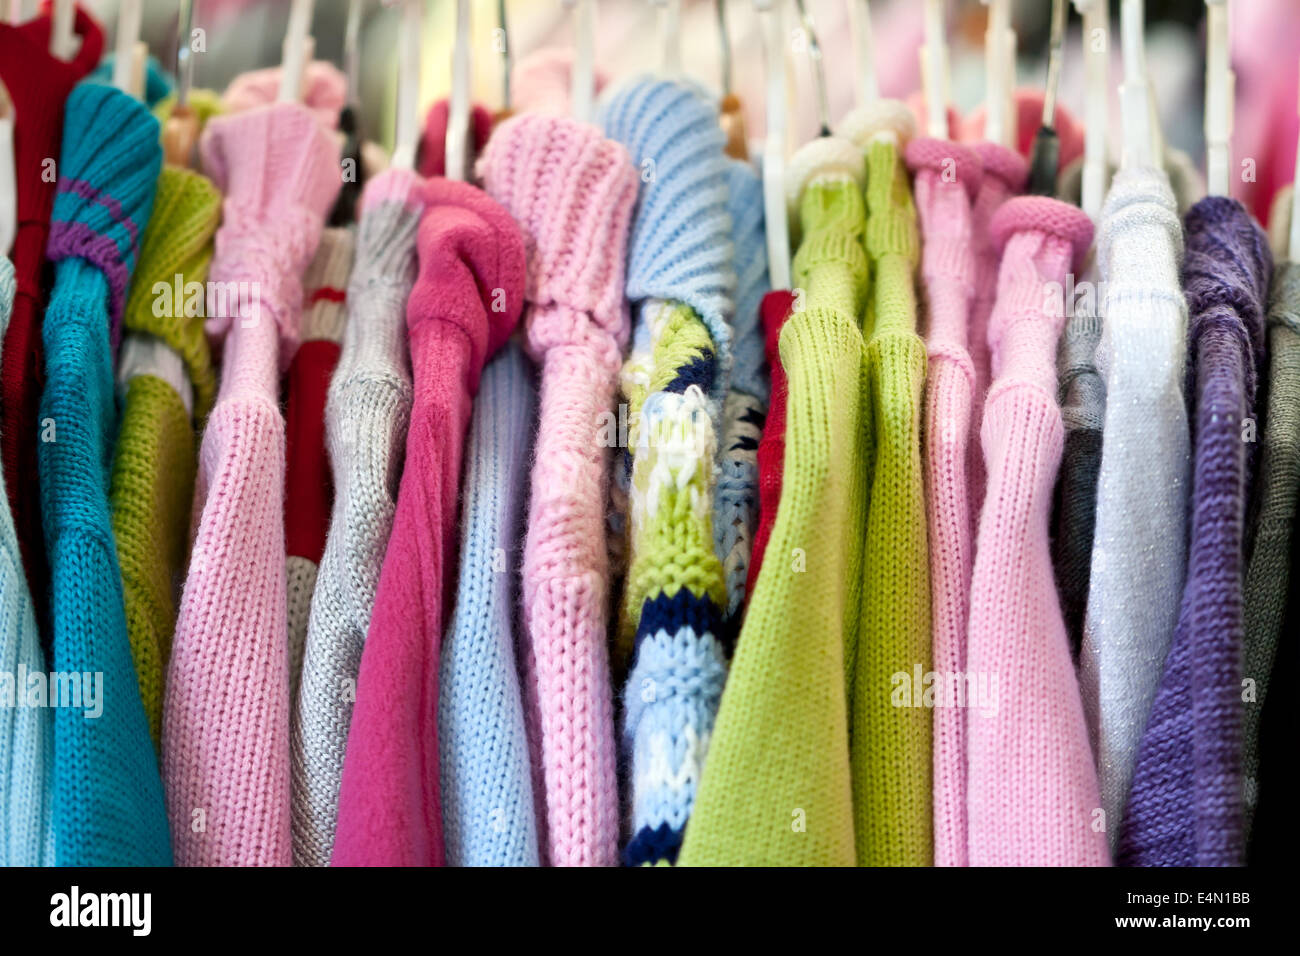 Children's knitted garments - Stock Image